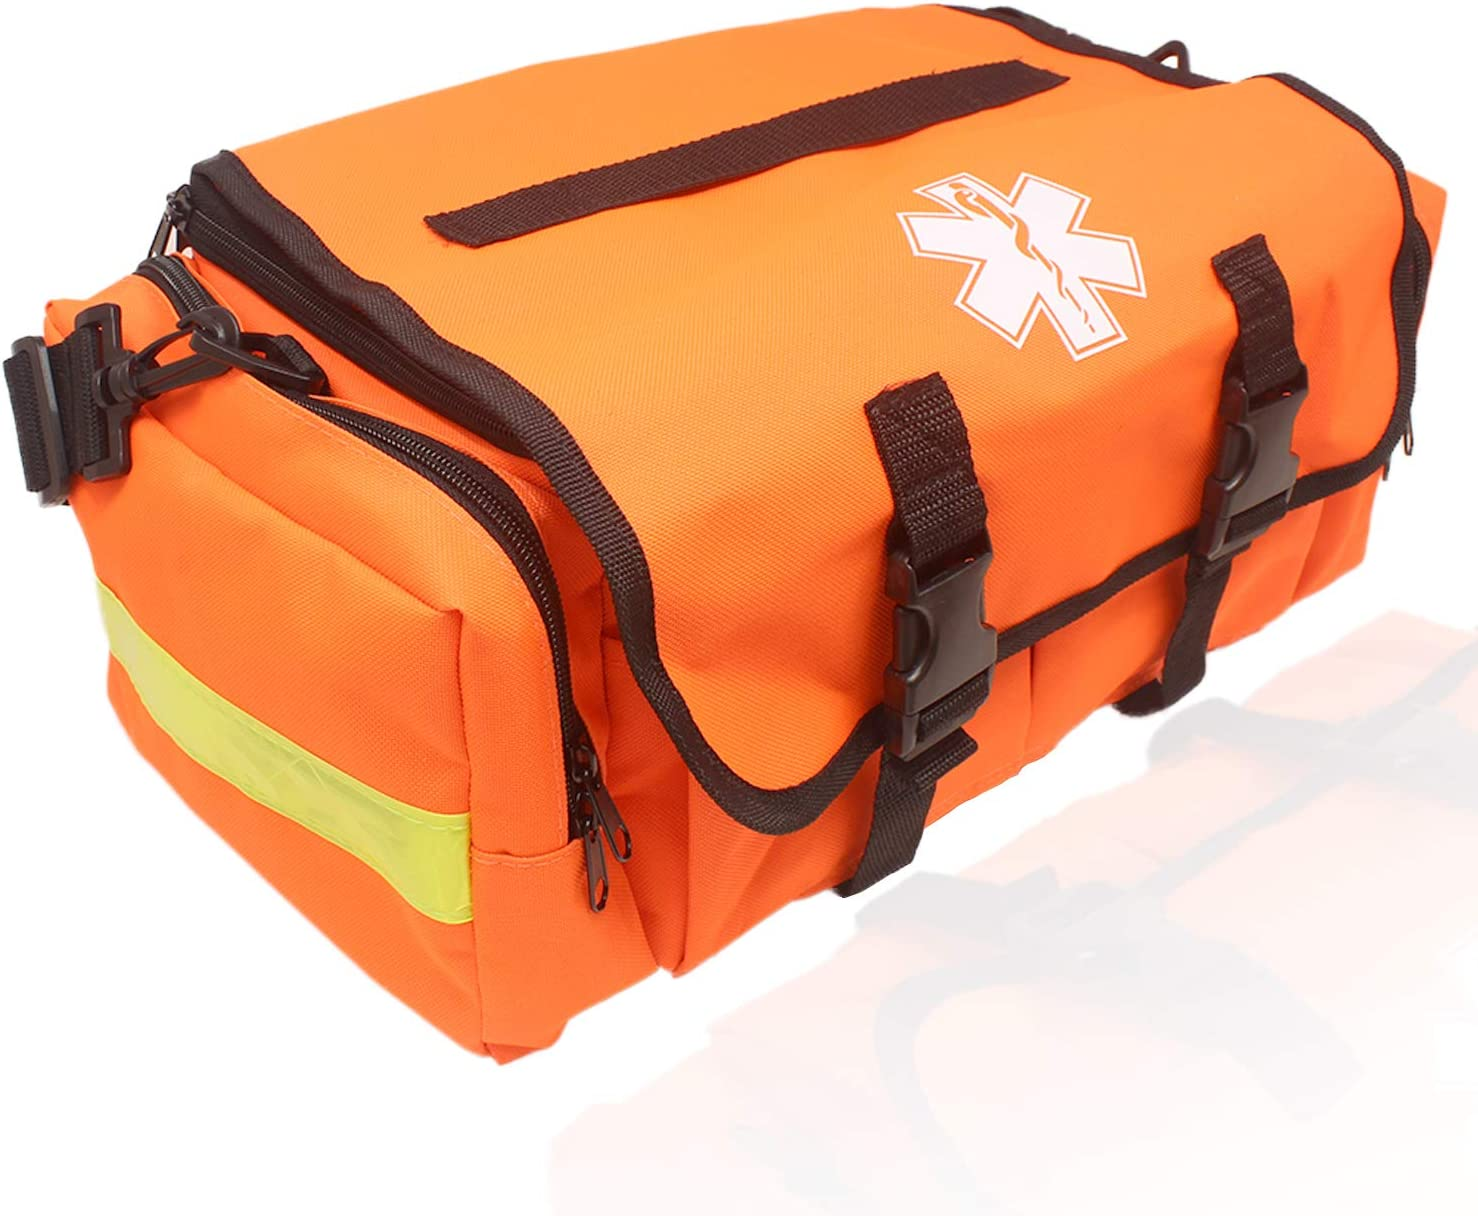 Ever Ready First Aid First Responder On Call Trauma Bag-PRO with Reflectors - Orange